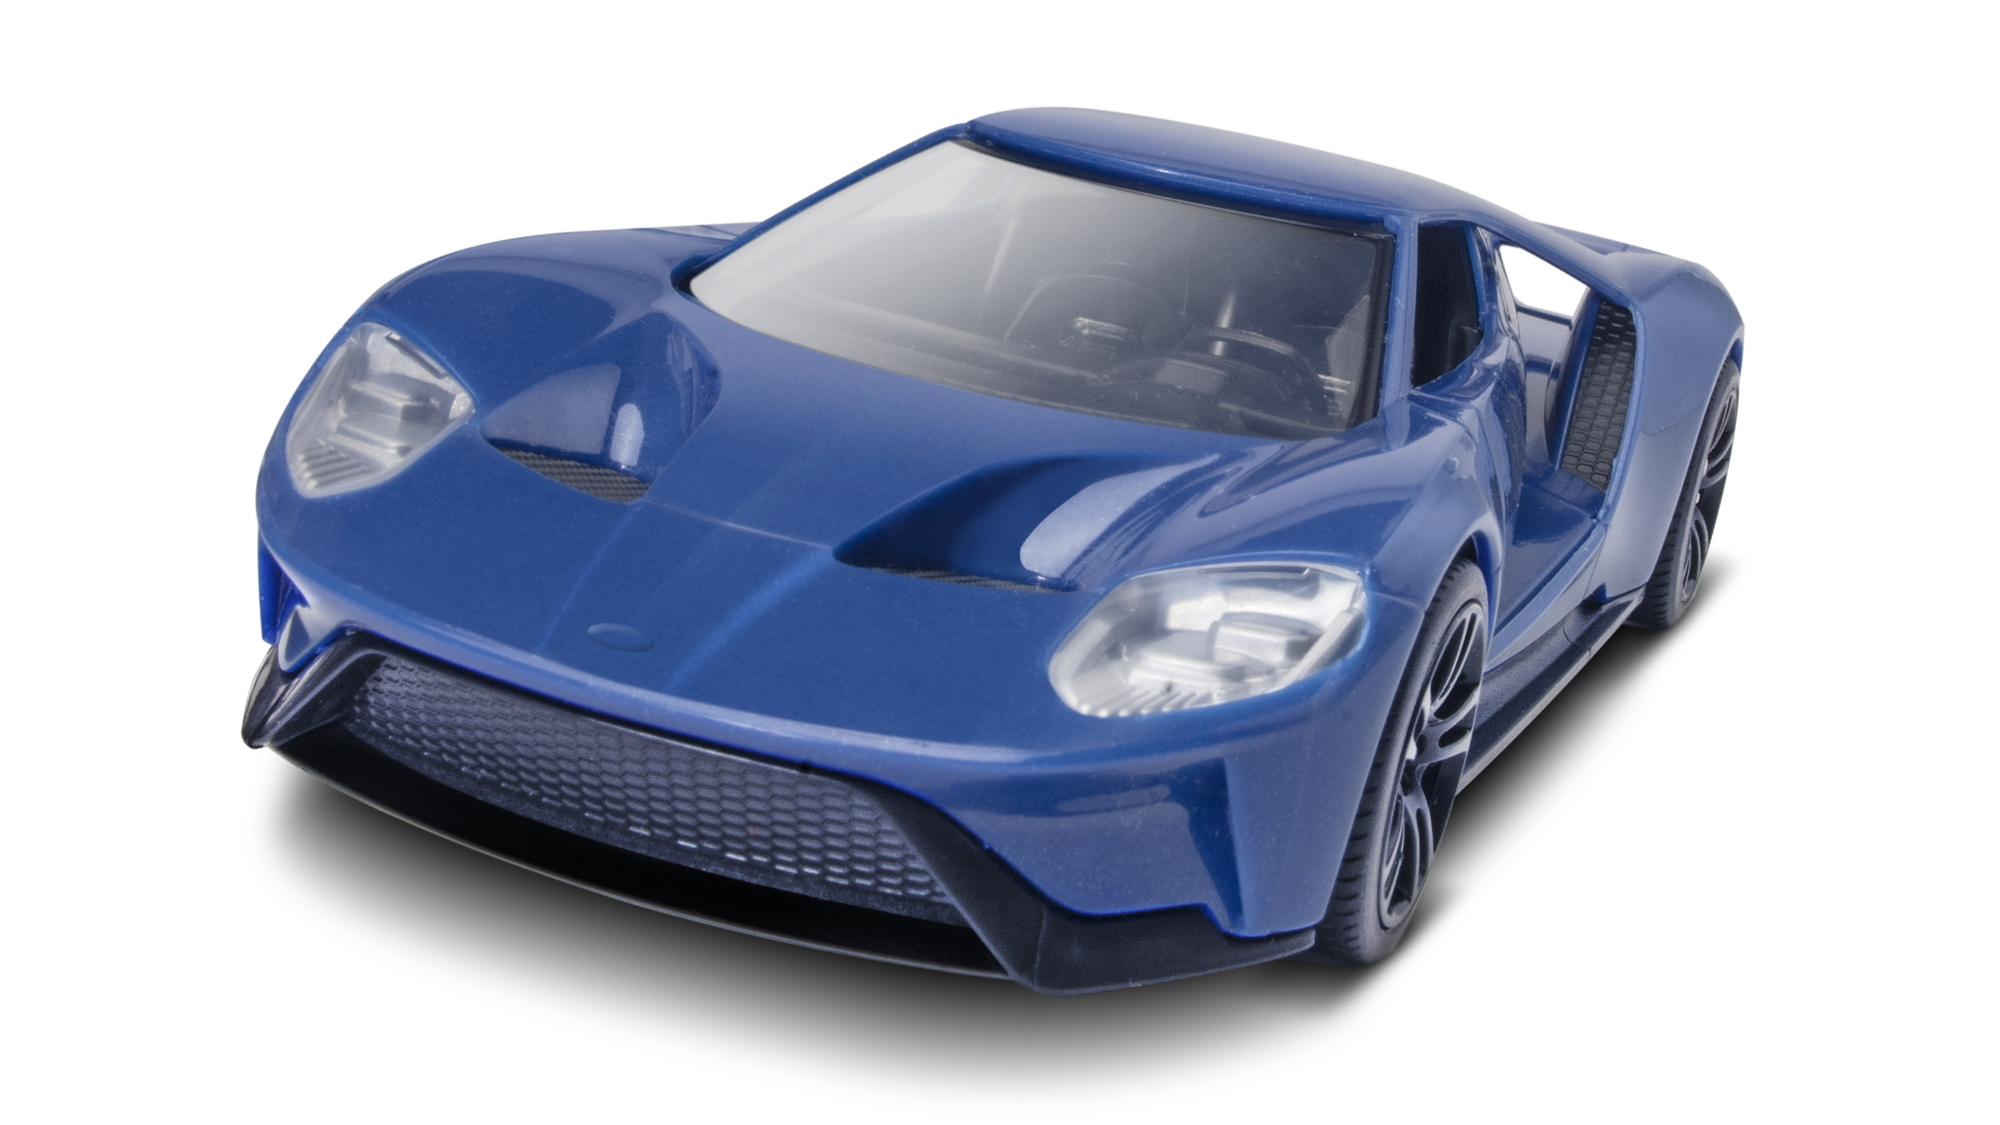 Ford GT snap-together model